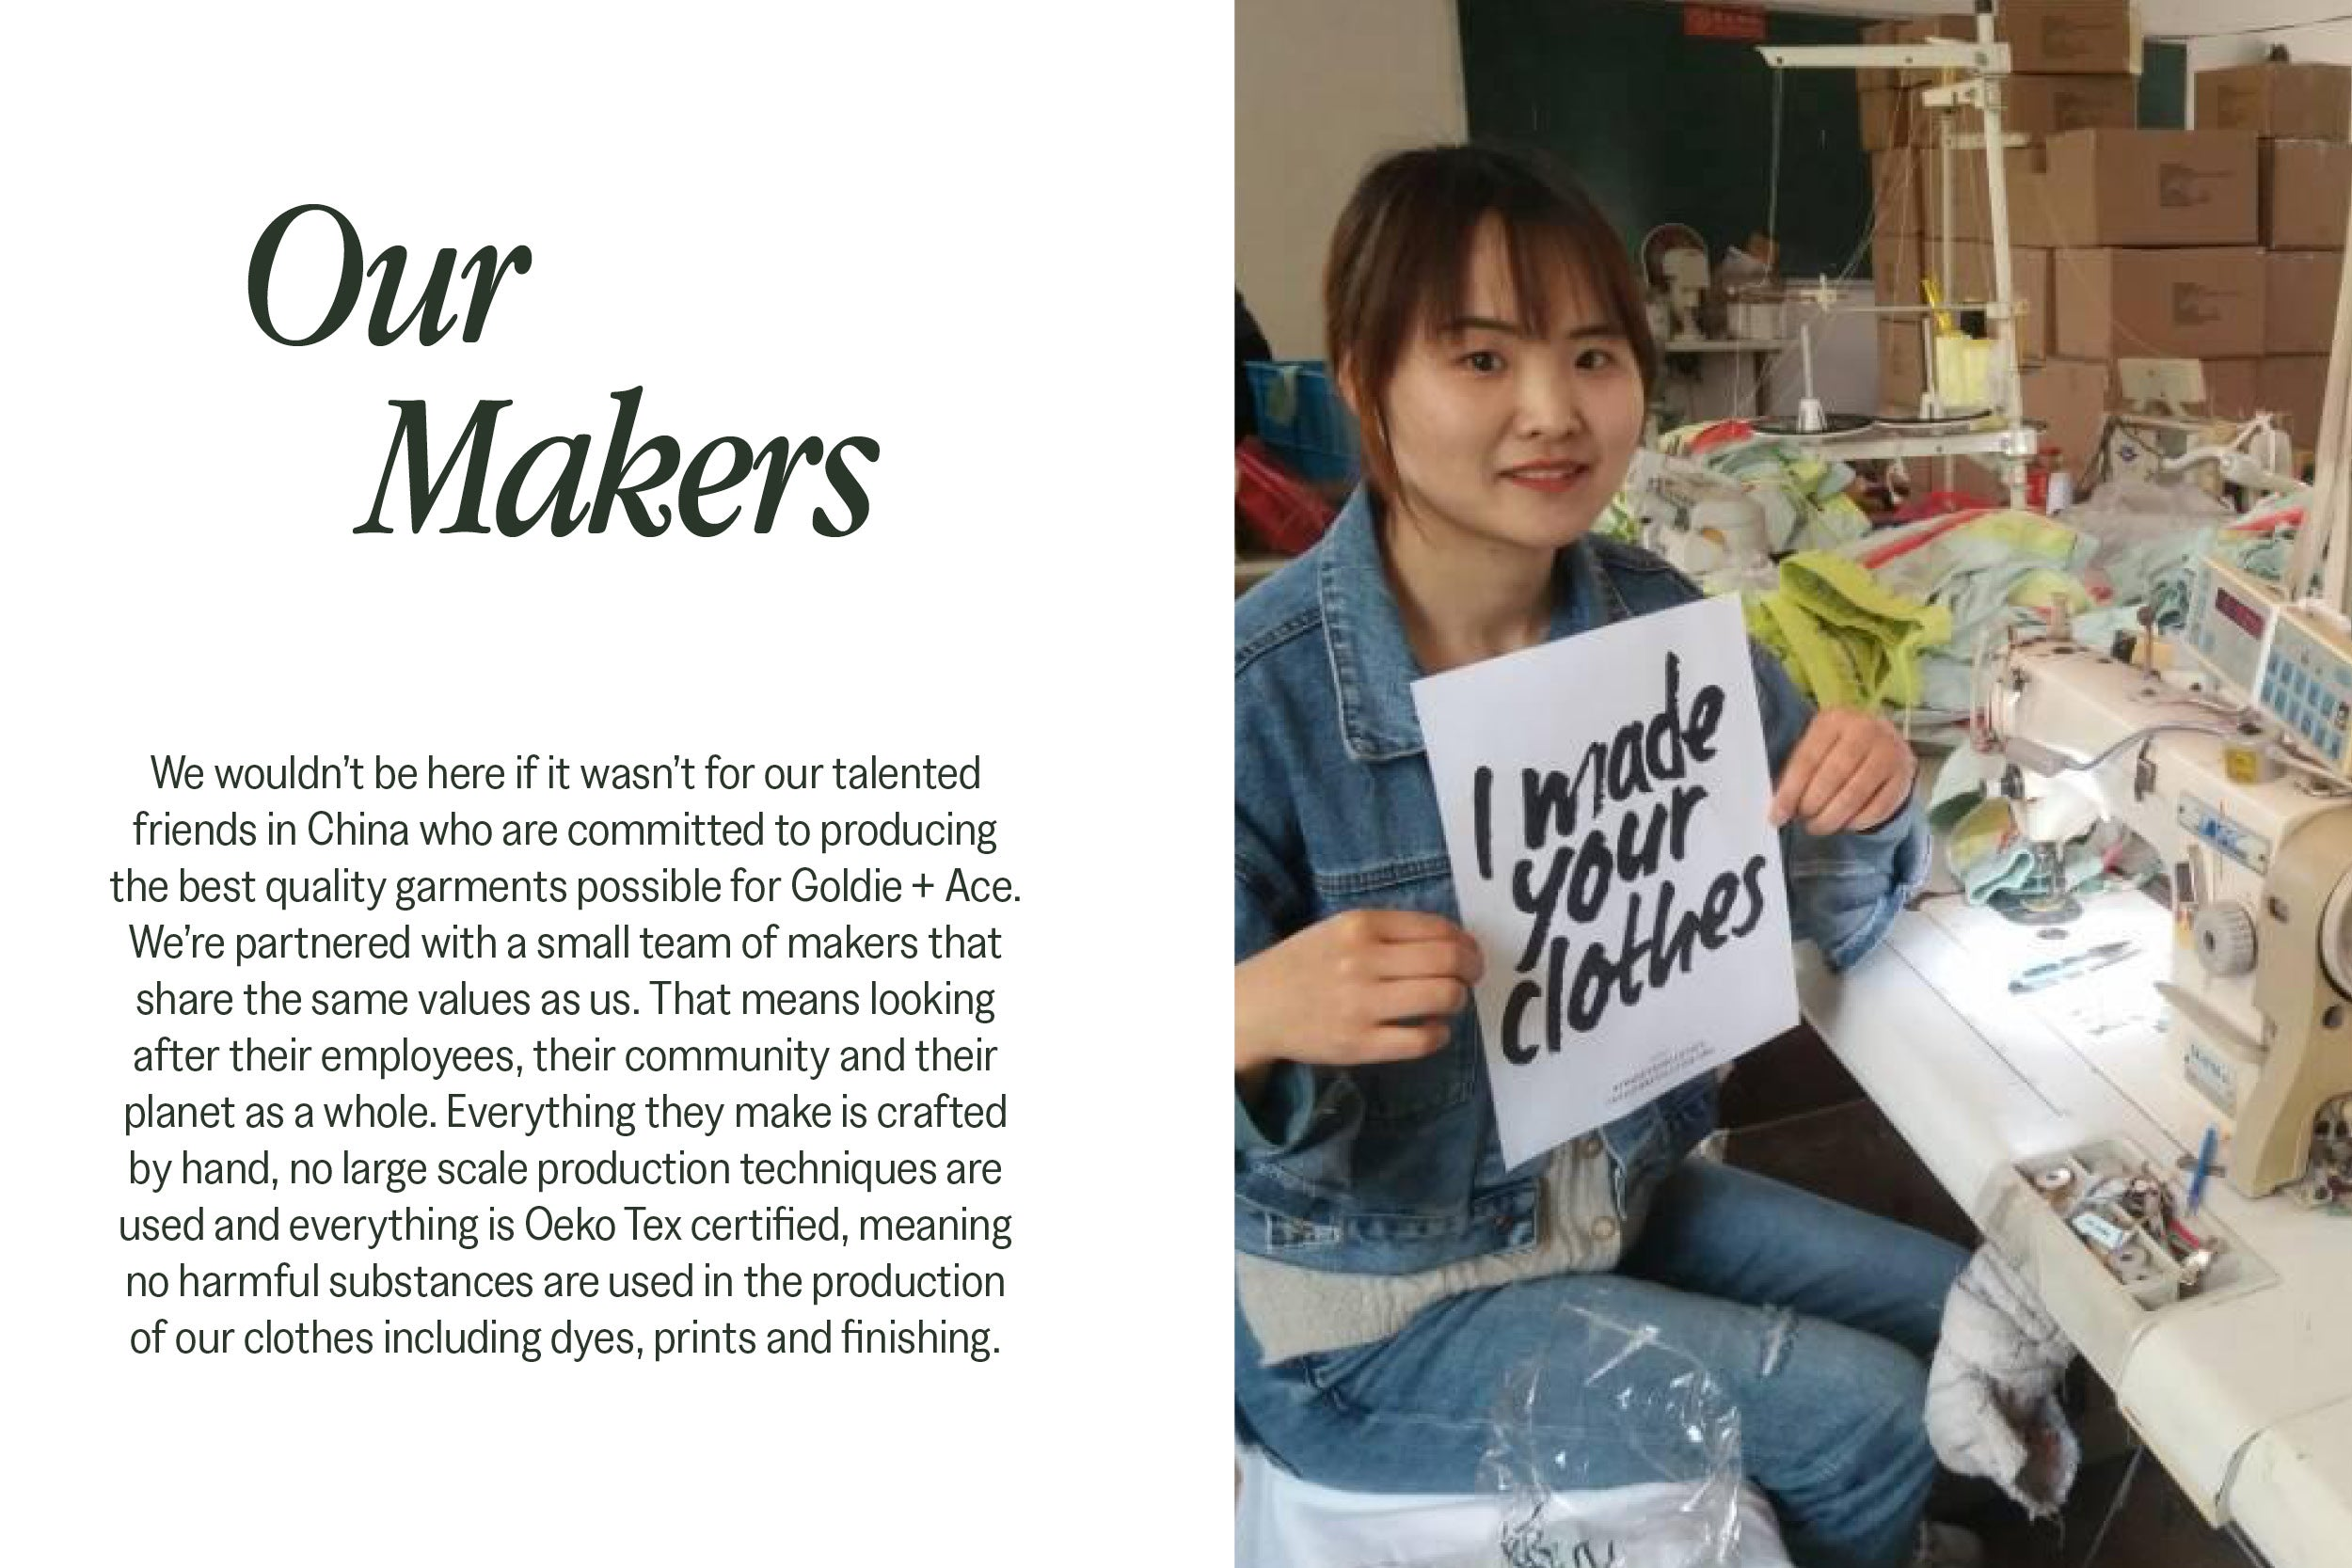 Our Makers. We wouldn't be here if it wasn't for our talented friends in China who are committed to producing the best quality garments possible for Goldie + Ace. We're partnered with a small team of makers that share the same values as us. That means looking after their employees, their community and their planet as a whole. Everything they make is crafted by hand, no large scale production techniques are used and everything is Oeko Tex certified, meaning no harmful substances are used in the production of our clothes including dyes, prints and finishing.